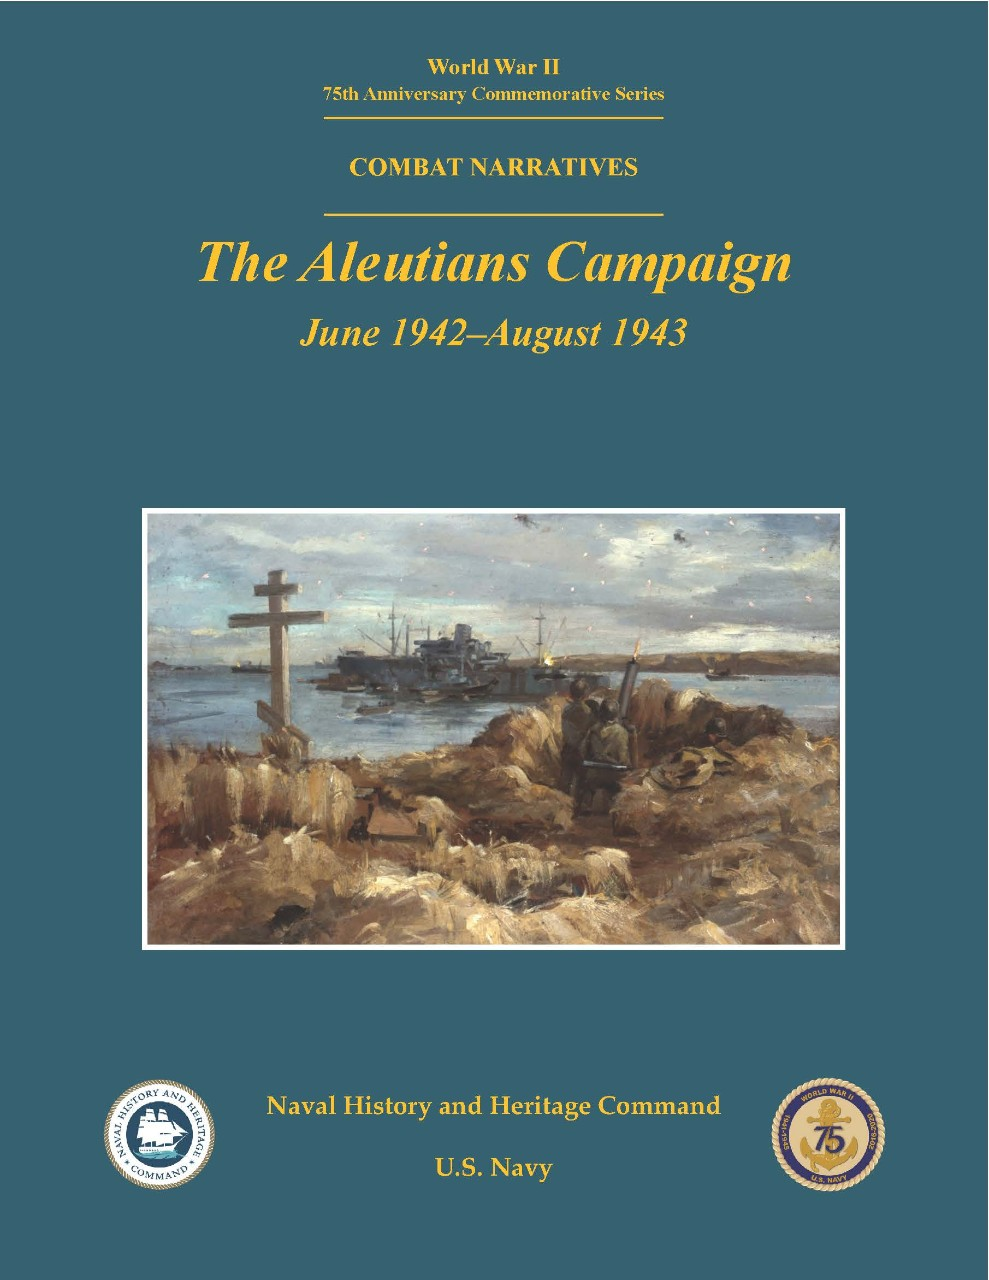 The Aleutians Campaign